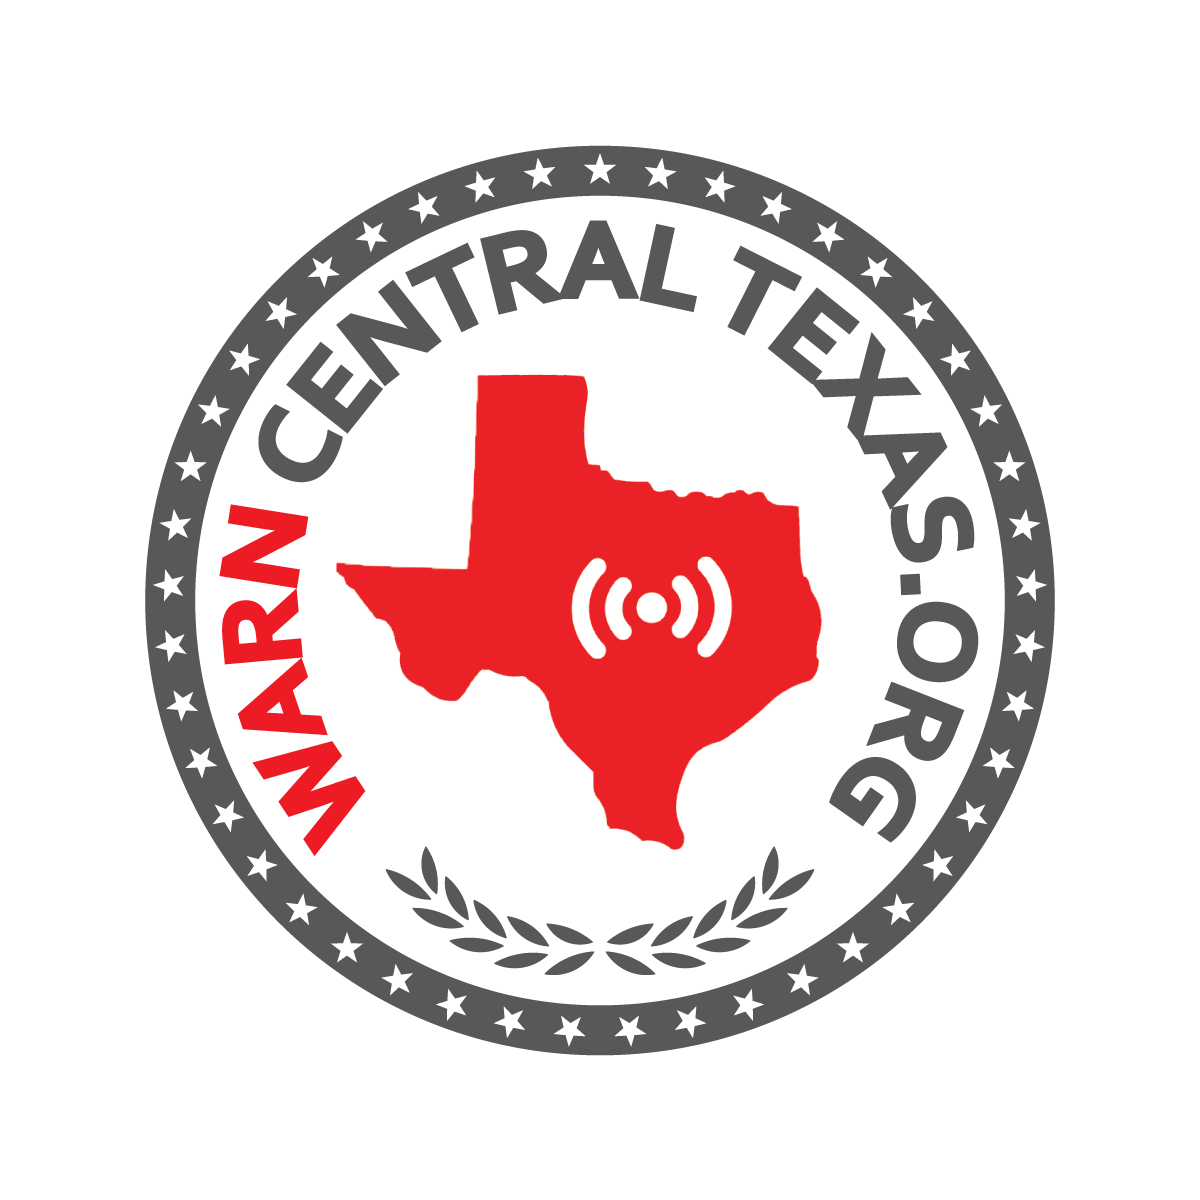 Warn Central Texas | Capital Area Council of Governments